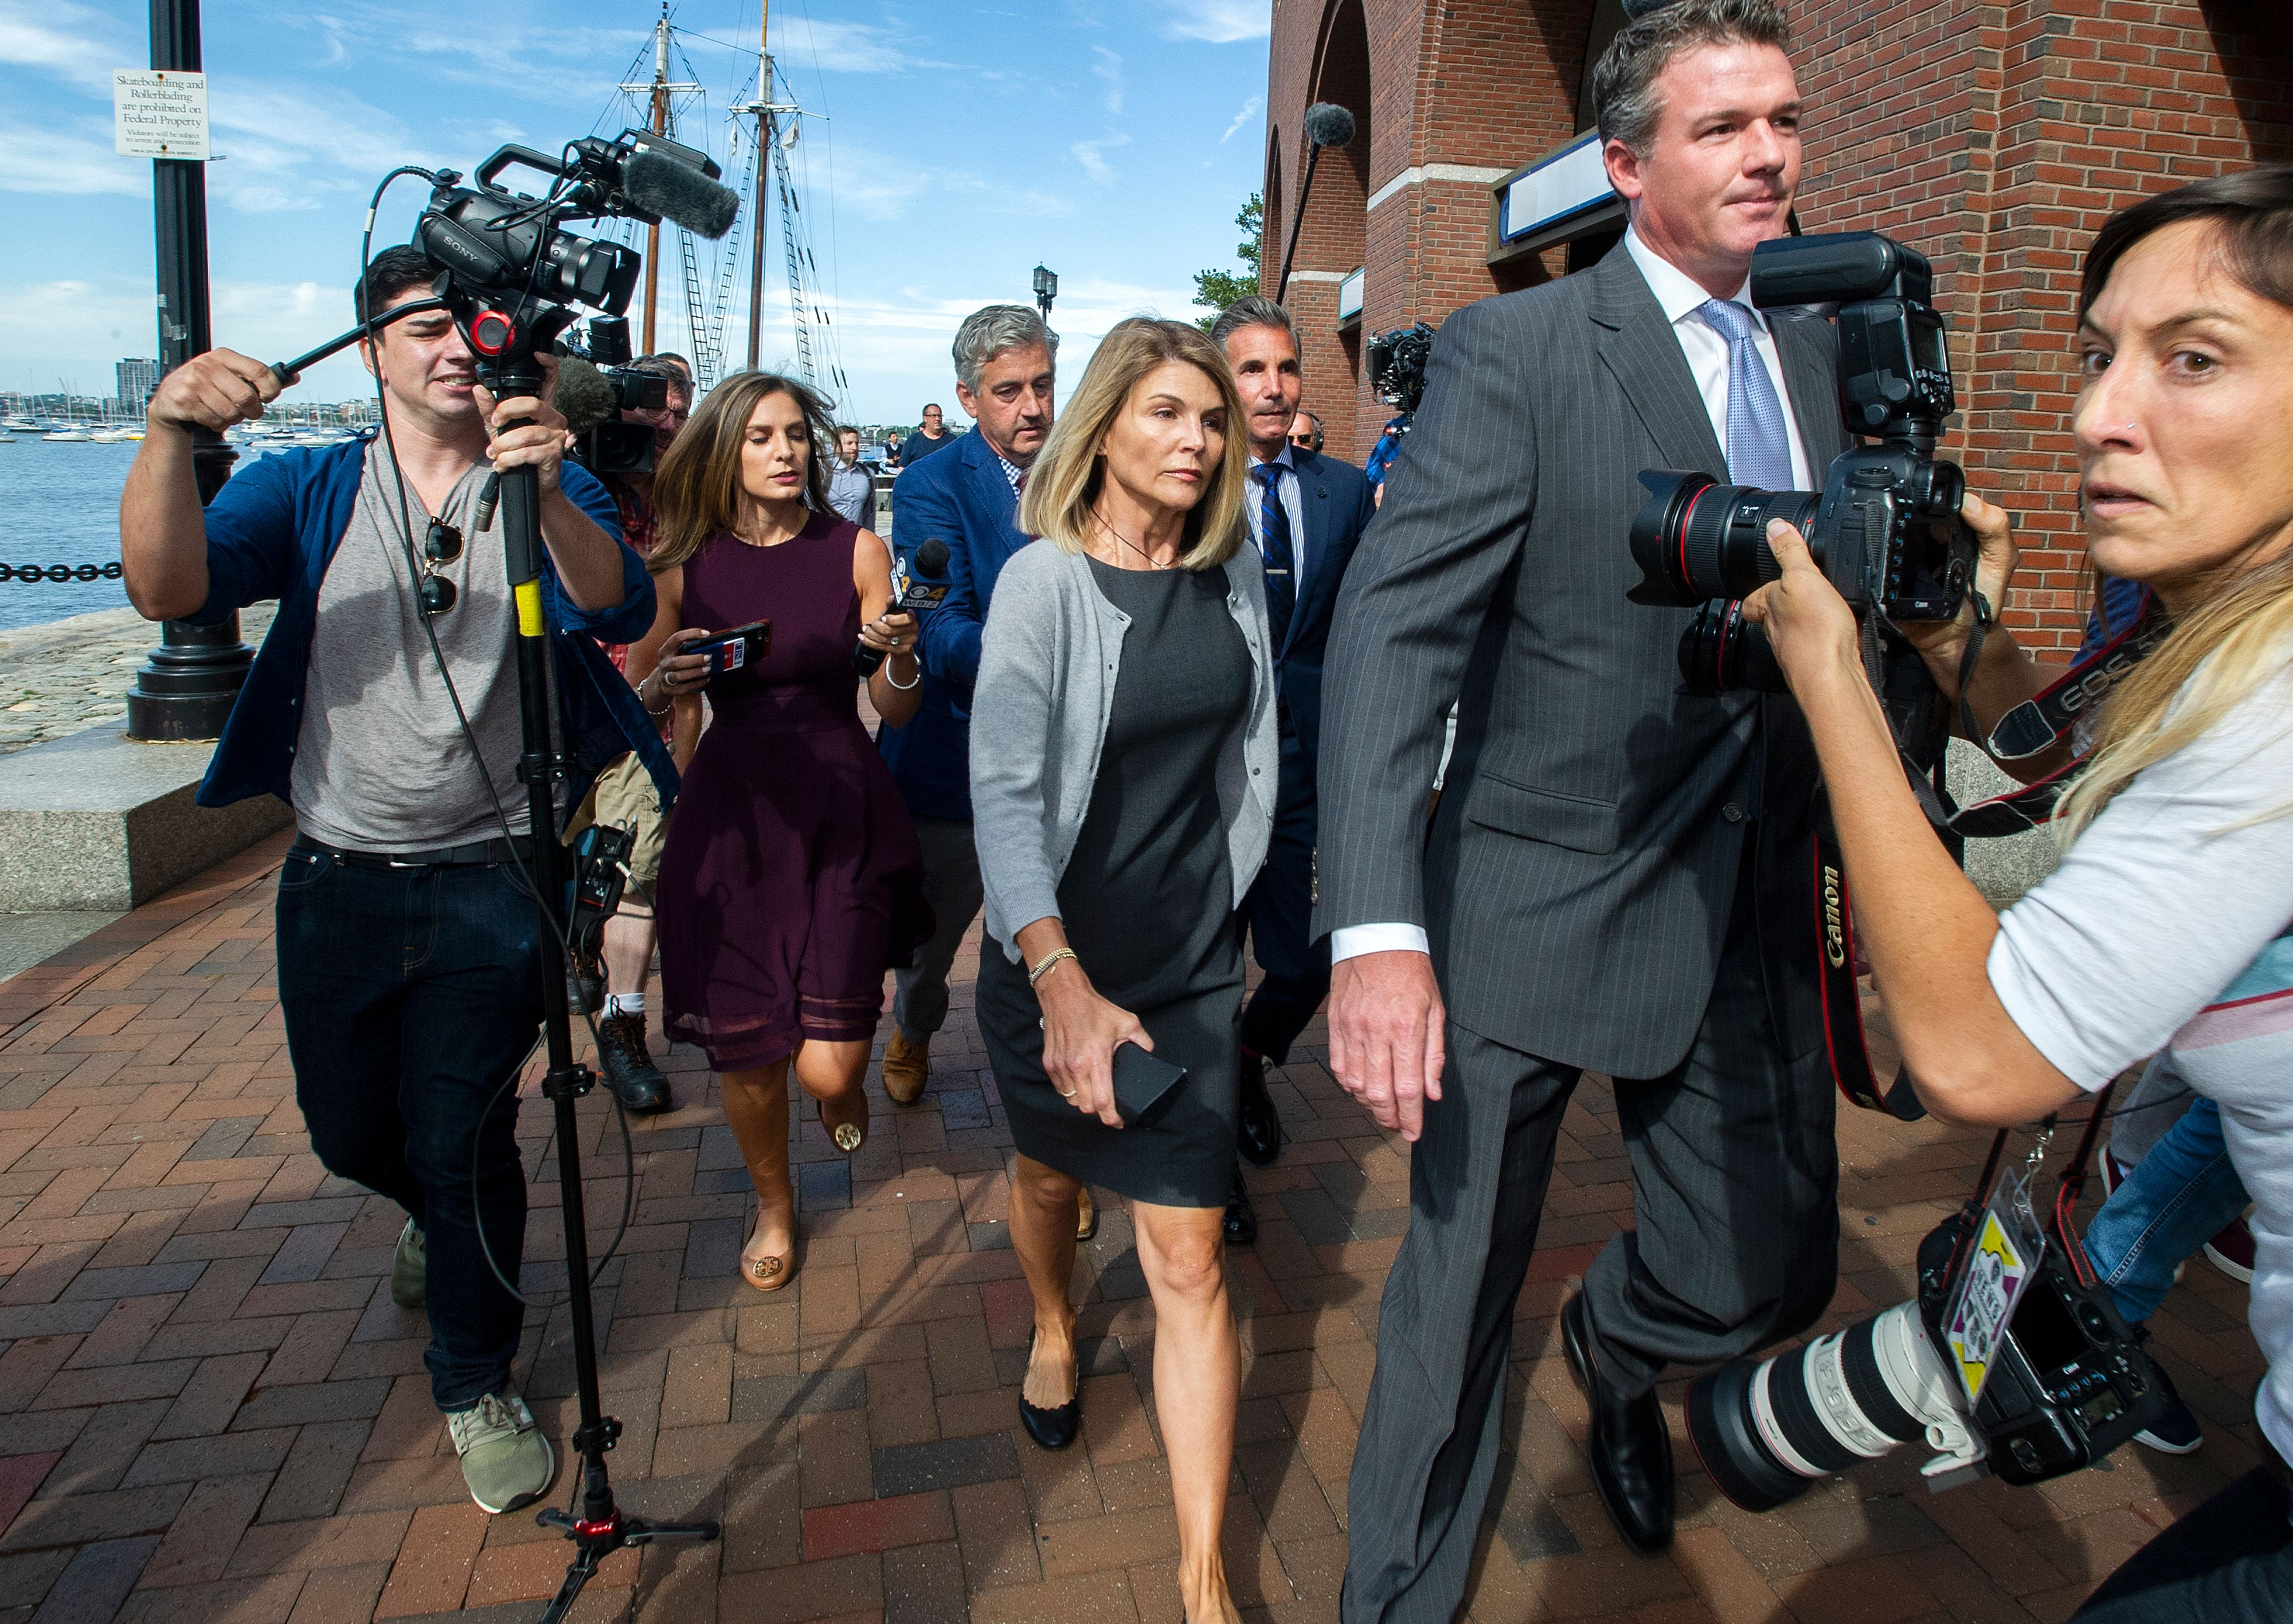 Actress Lori Loughlin (C) and husband Mossimo Giannulli (C rear) exit the Boston Federal Court house after a pre-trial hearing with Magistrate Judge Kelley at the John Joseph Moakley US Courthouse in Boston on August 27, 2019. - Loughlin and Giannulli are charged with conspiracy to commit mail and wire fraud and conspiracy to commit money laundering in the college admissions scandal. (Photo credit JOSEPH PREZIOSO/AFP/Getty Images)